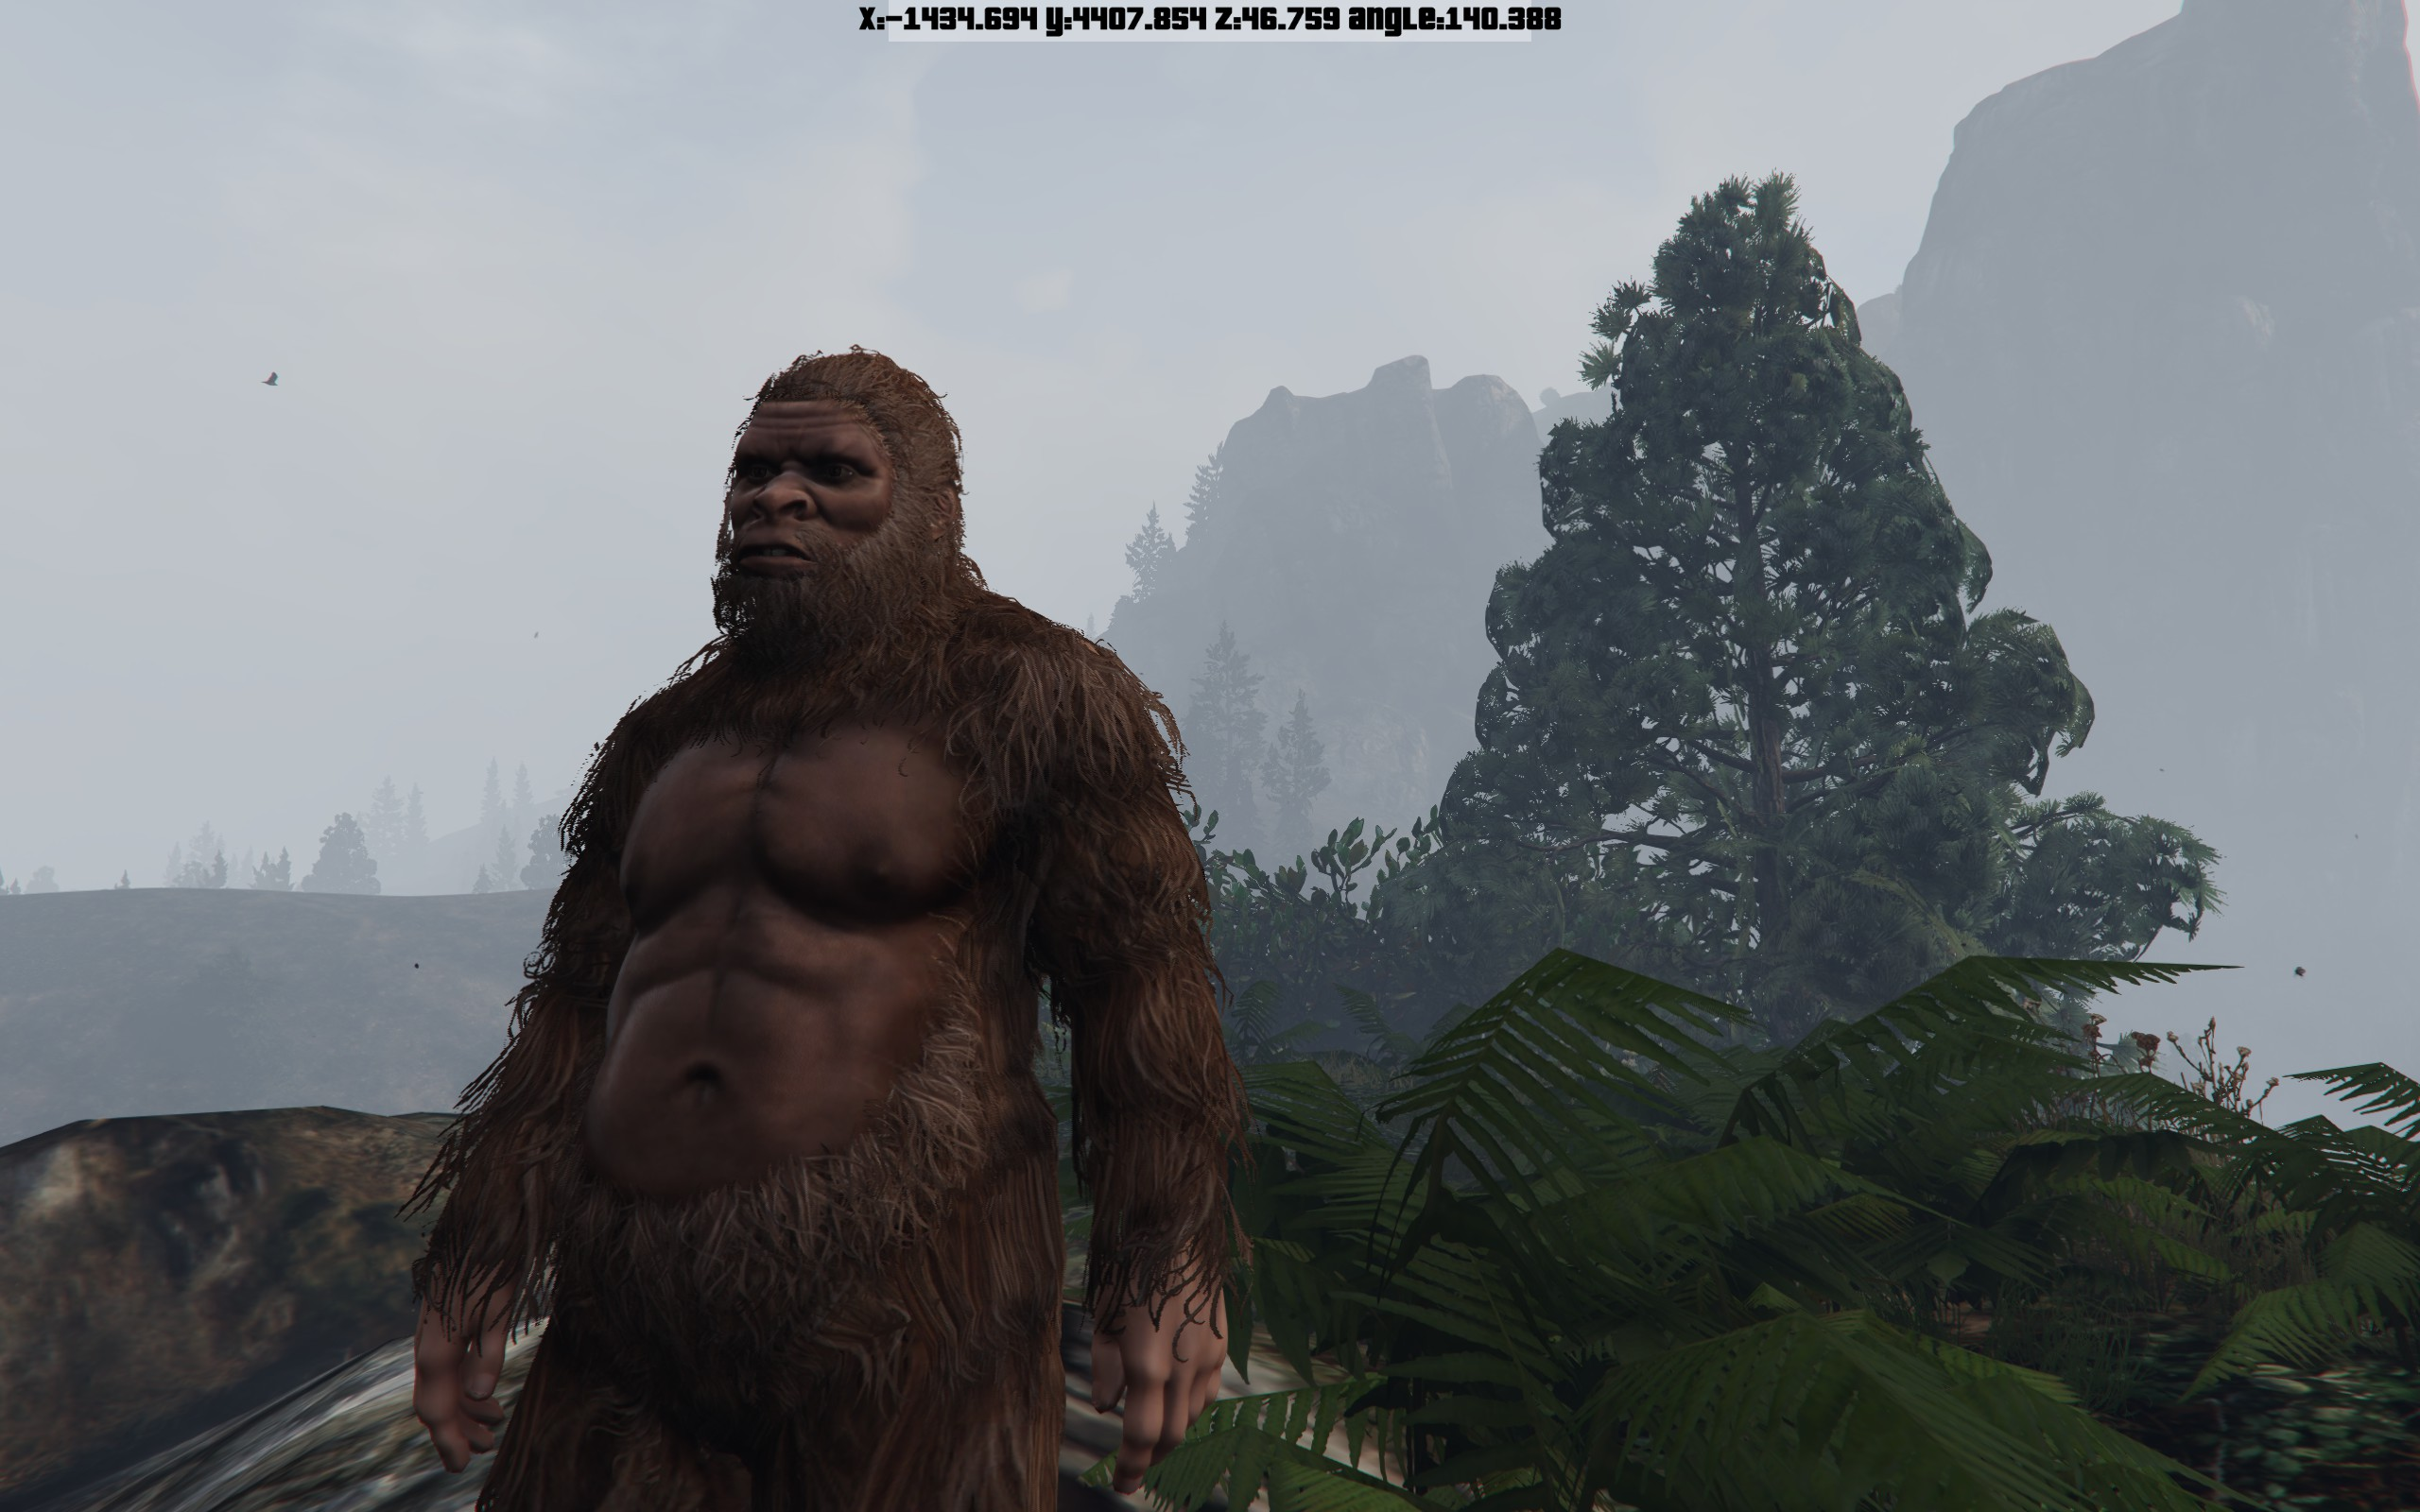 peyotl-big-foot-gta-5-11